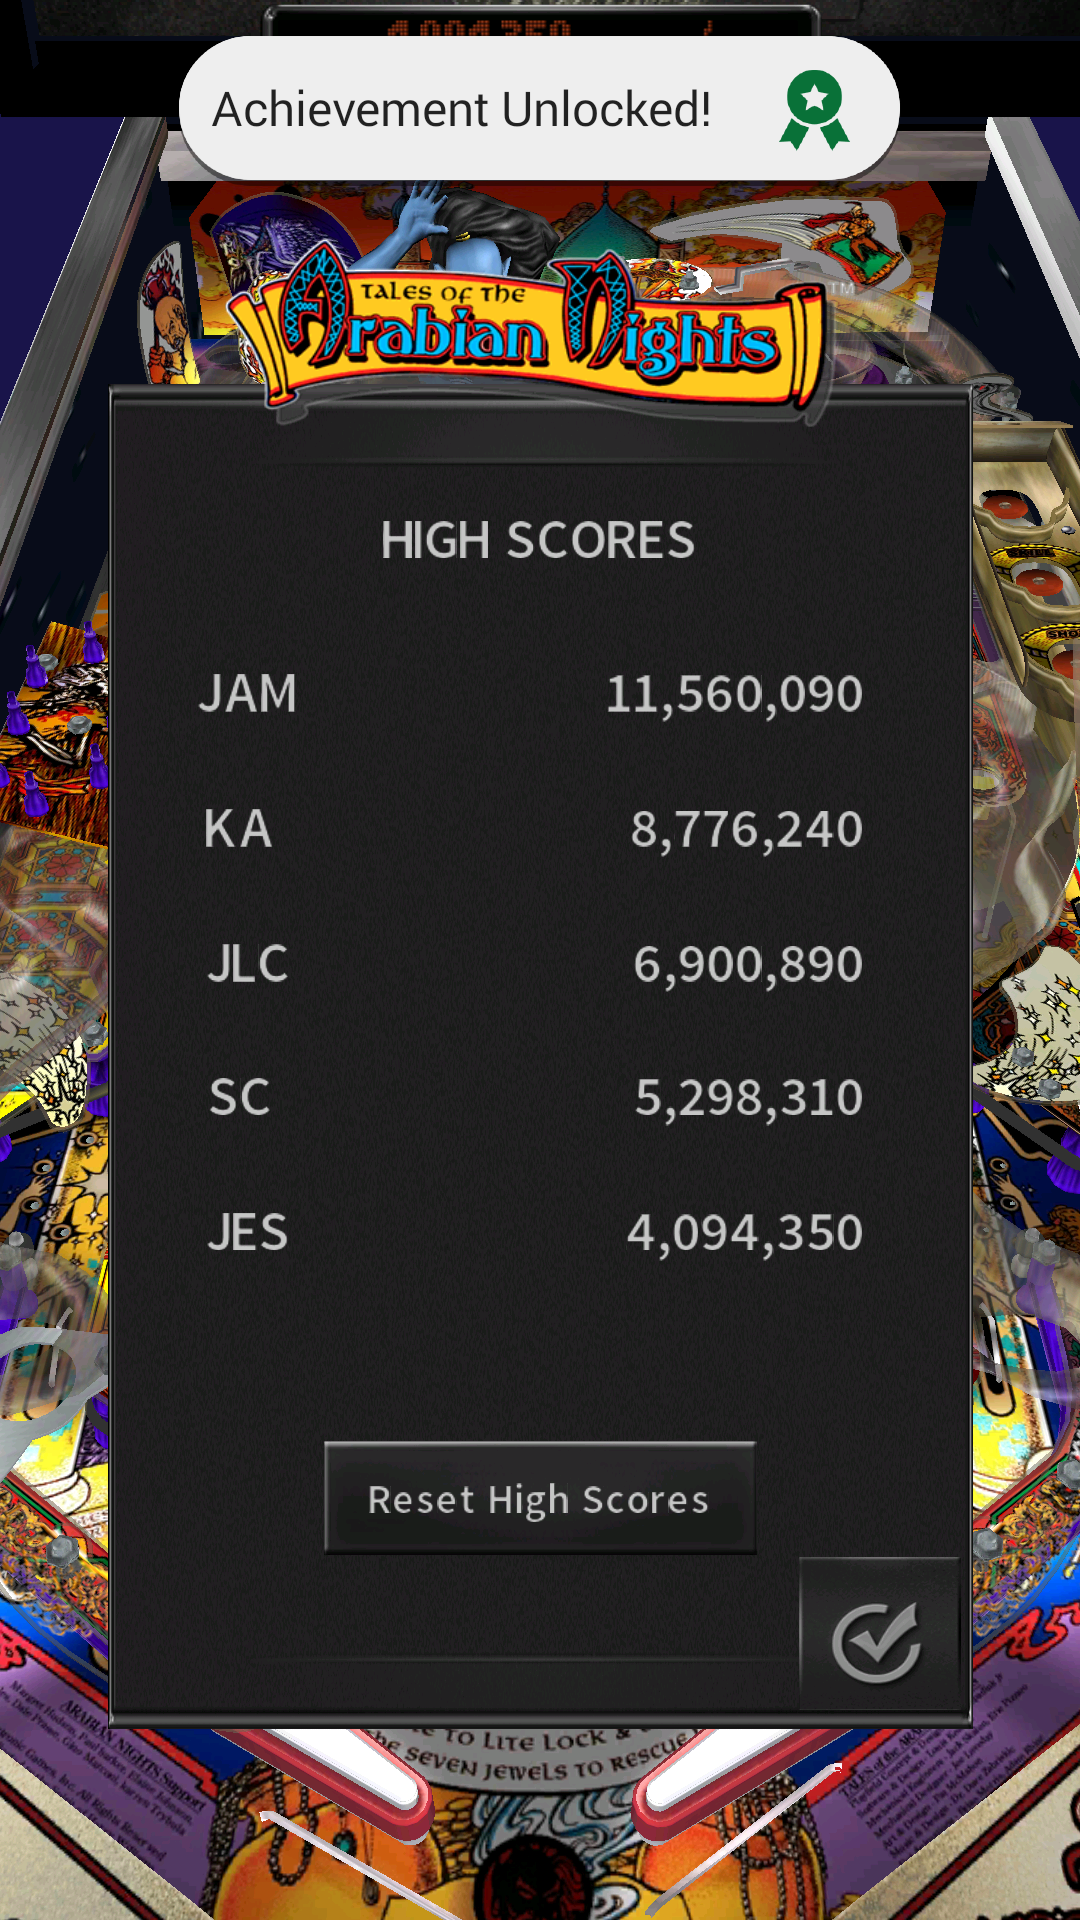 Pinball Arcade: Arabian Knights 4,094,350 points